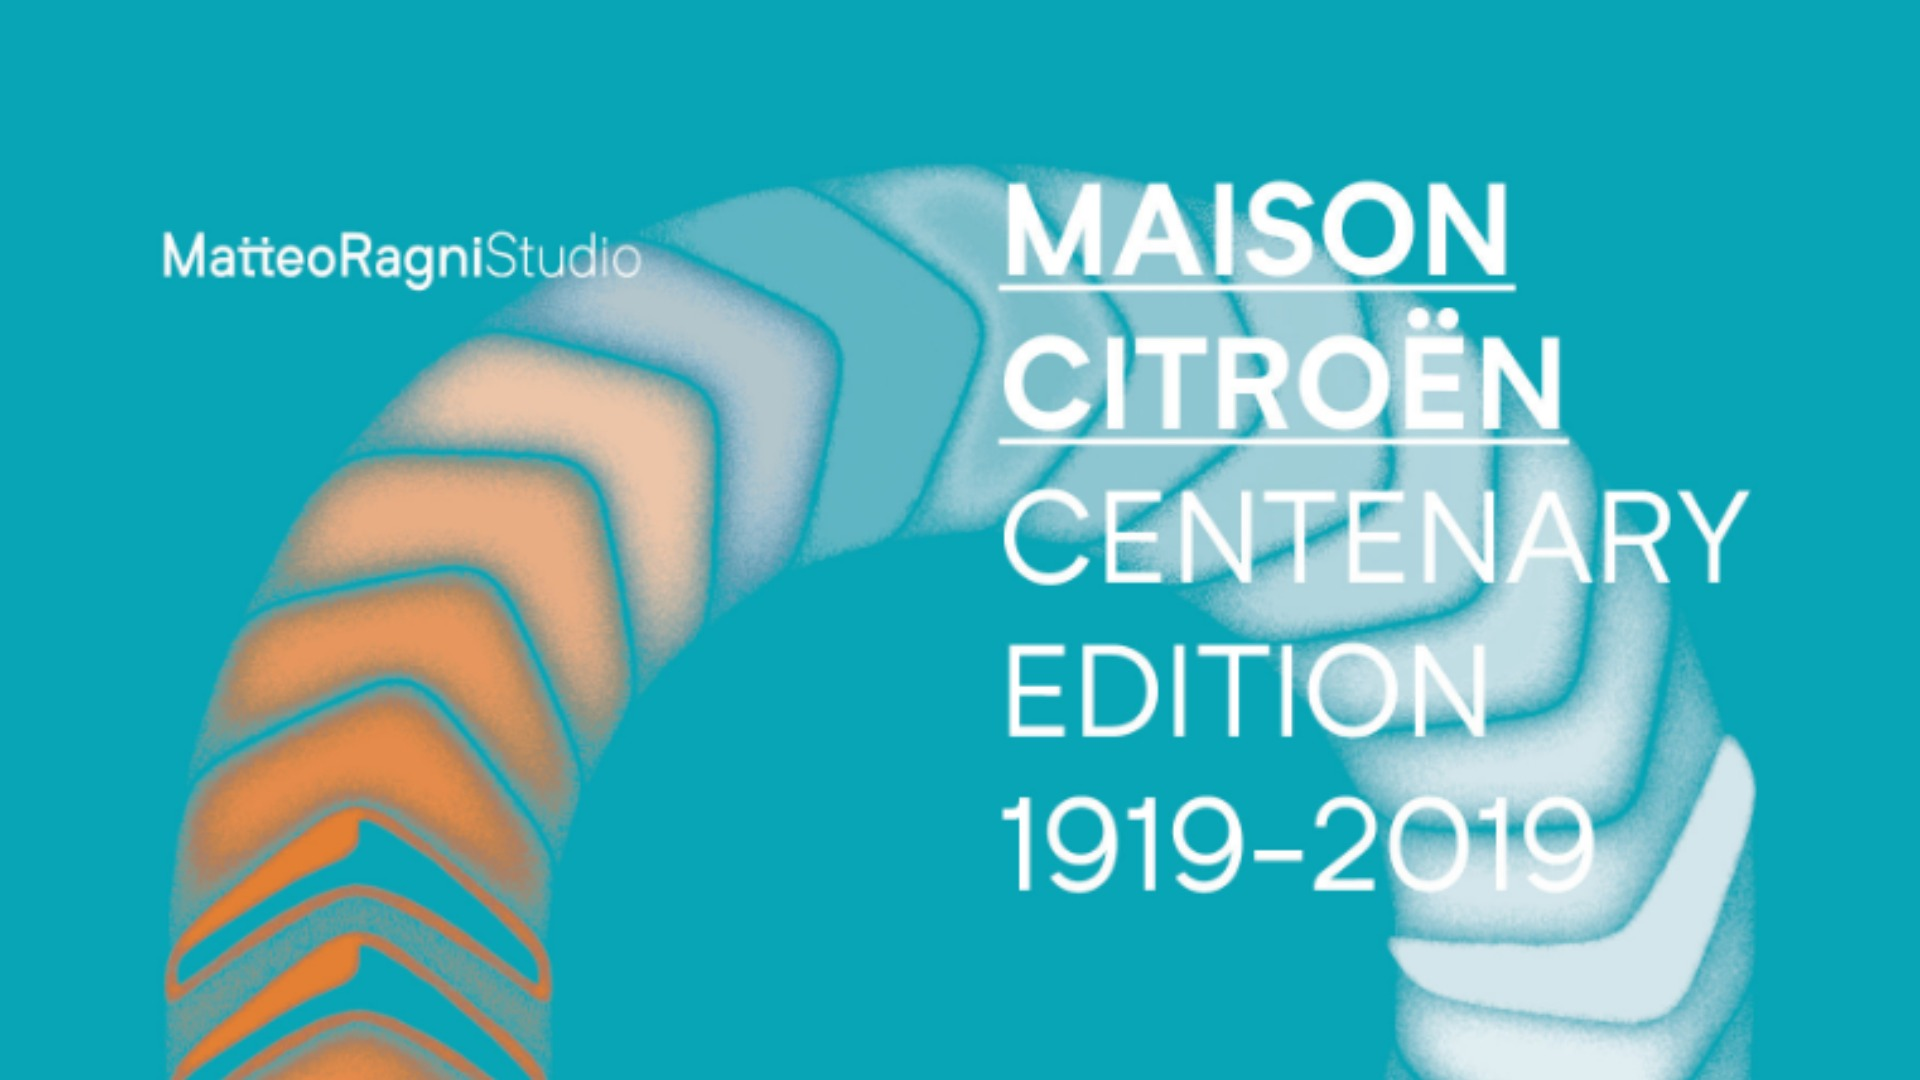 MAISON-CITROËN-CENTENARY-EDITION